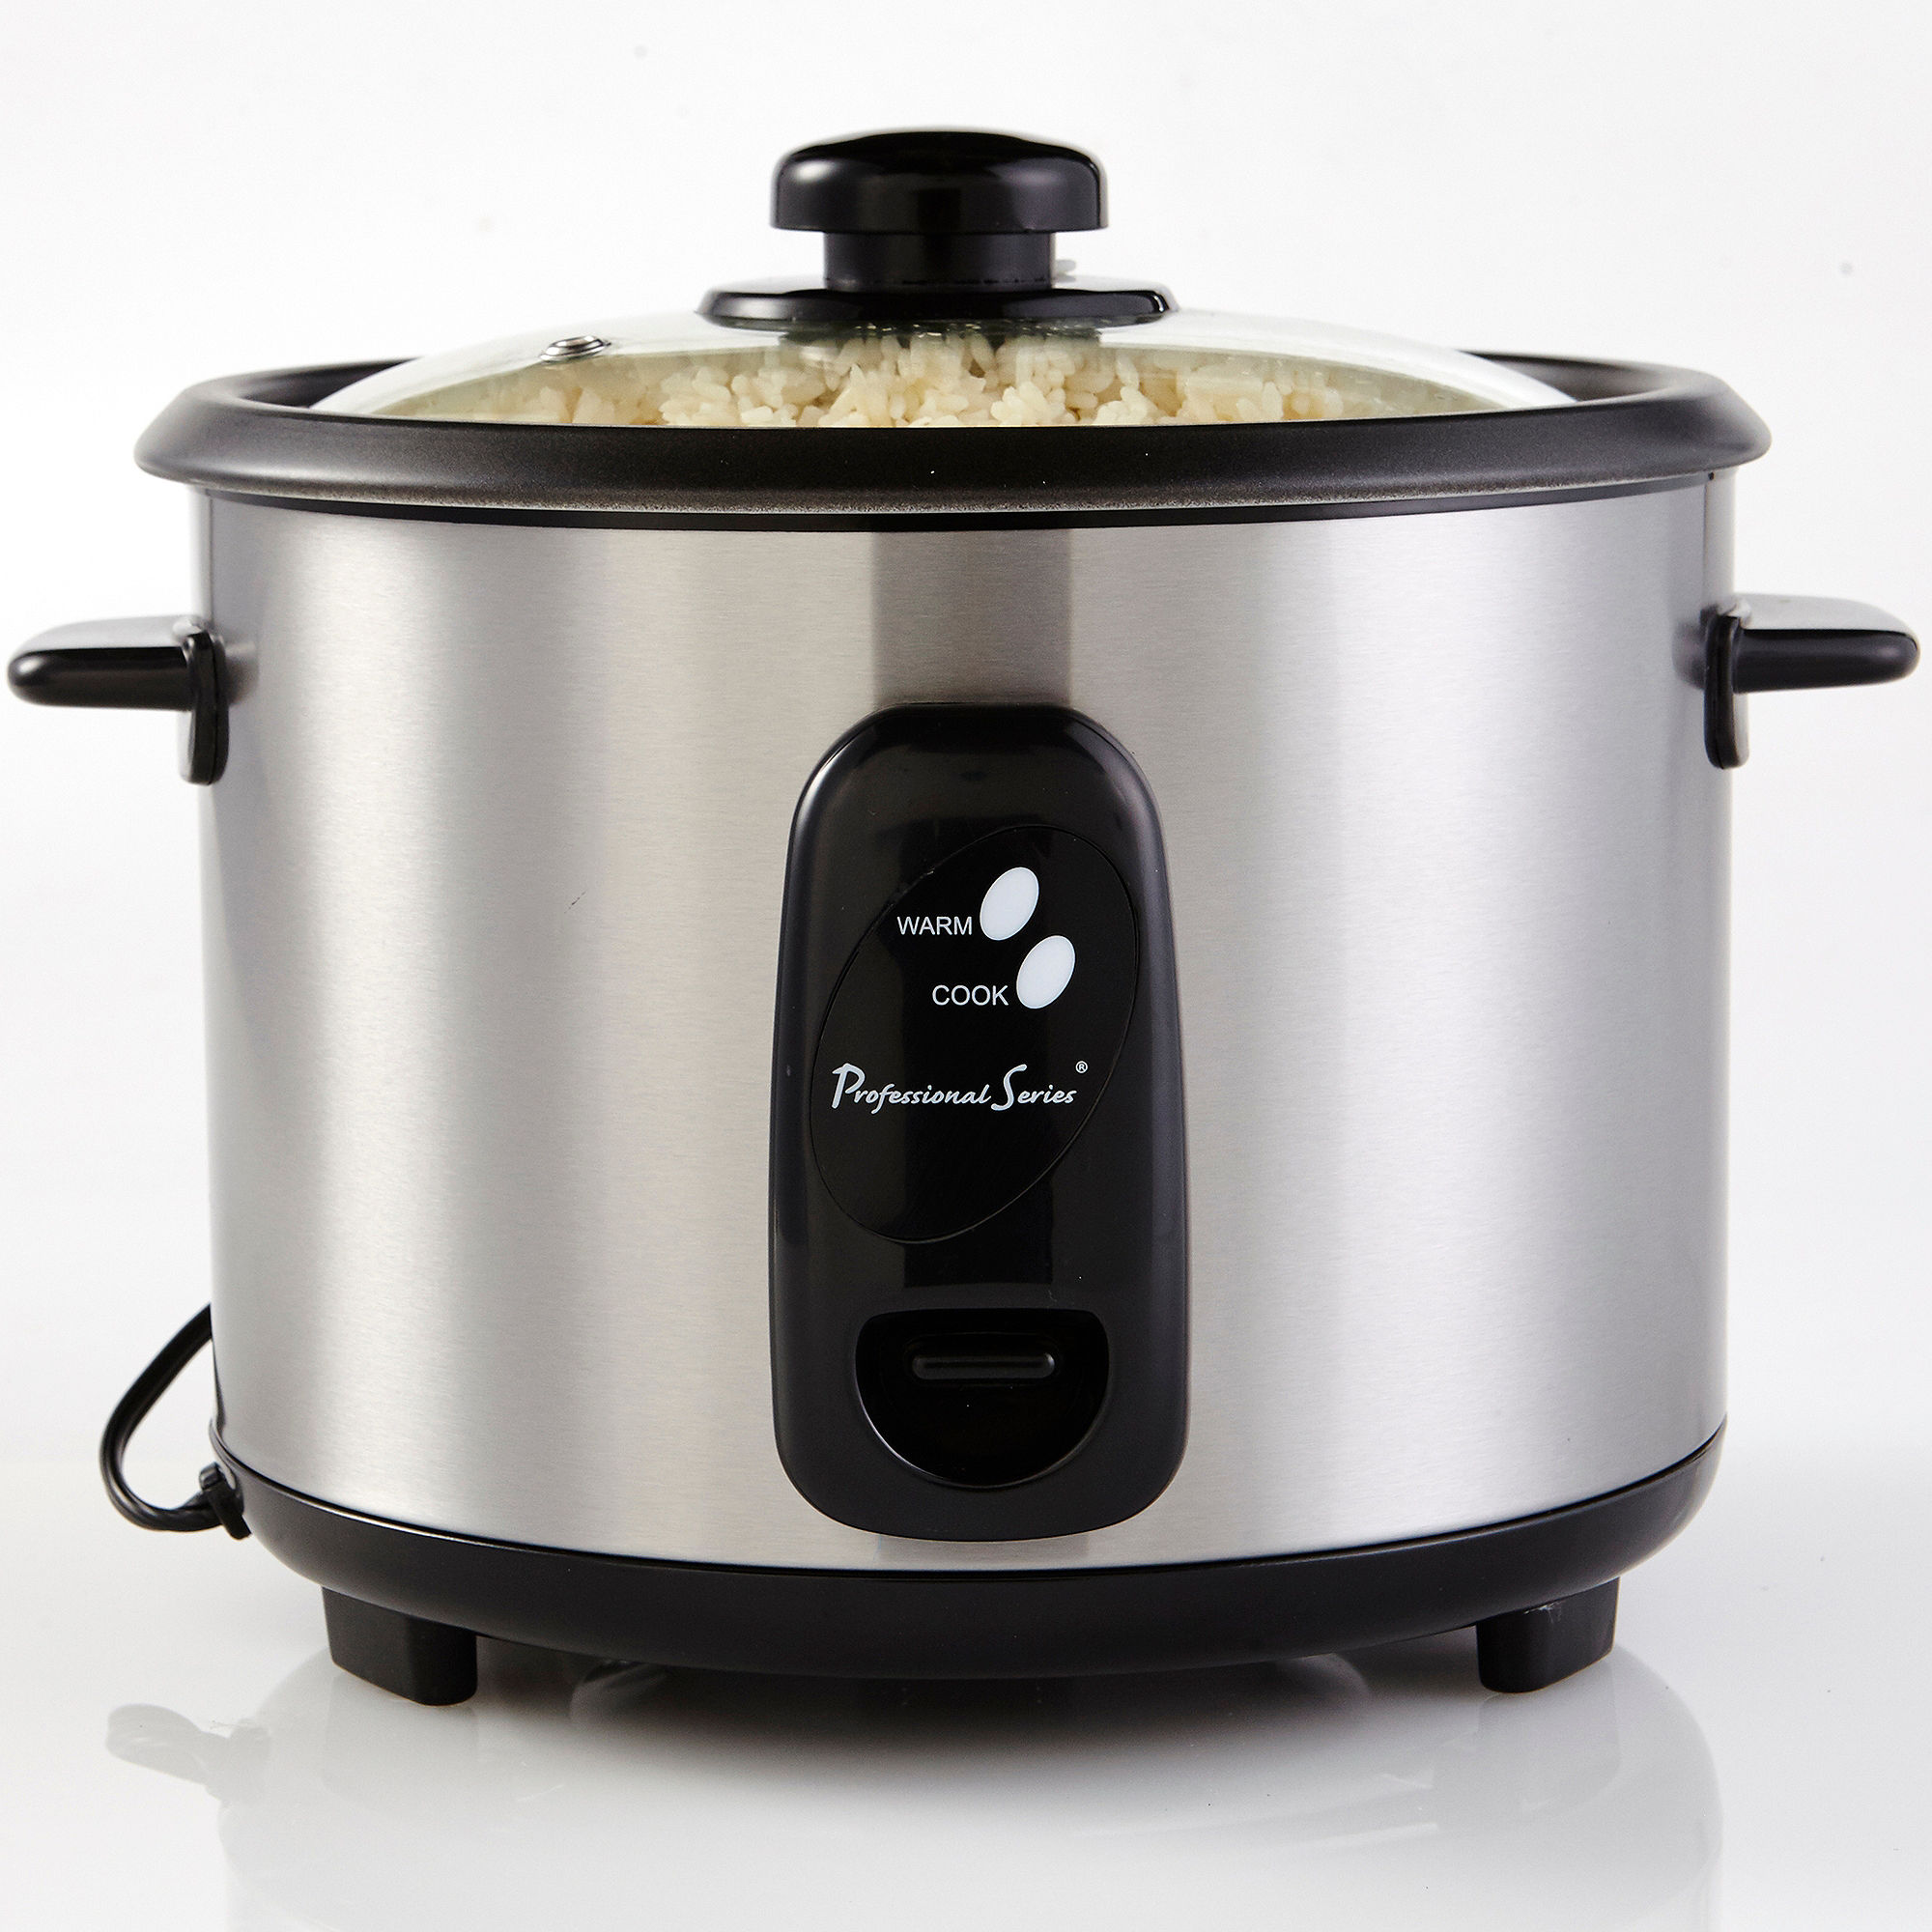 Professional Series Rice Cooker 10-Cup